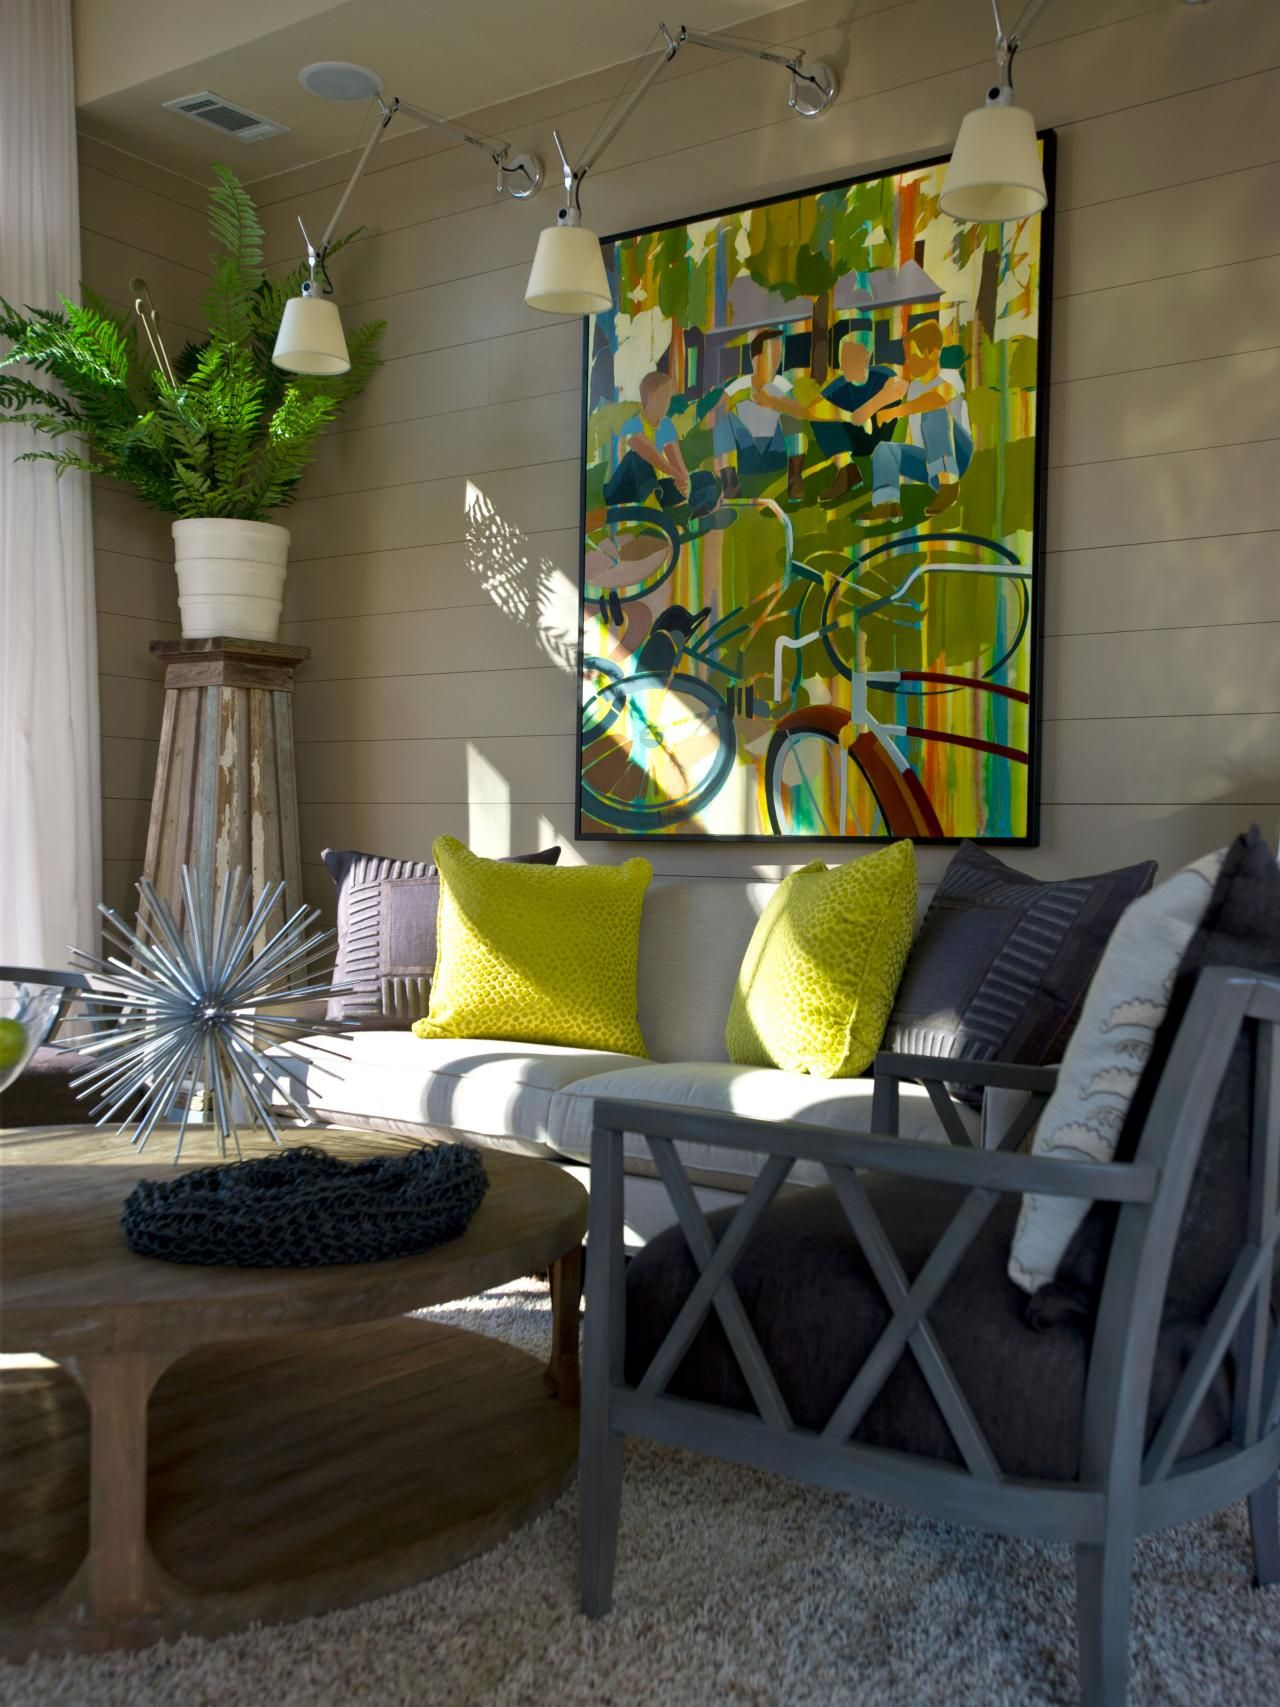 Eye Level Or About 60 Inches Is The Optimal Height For Hanging Art Unique Hgtv Living Room Design Ideas Design Ideas